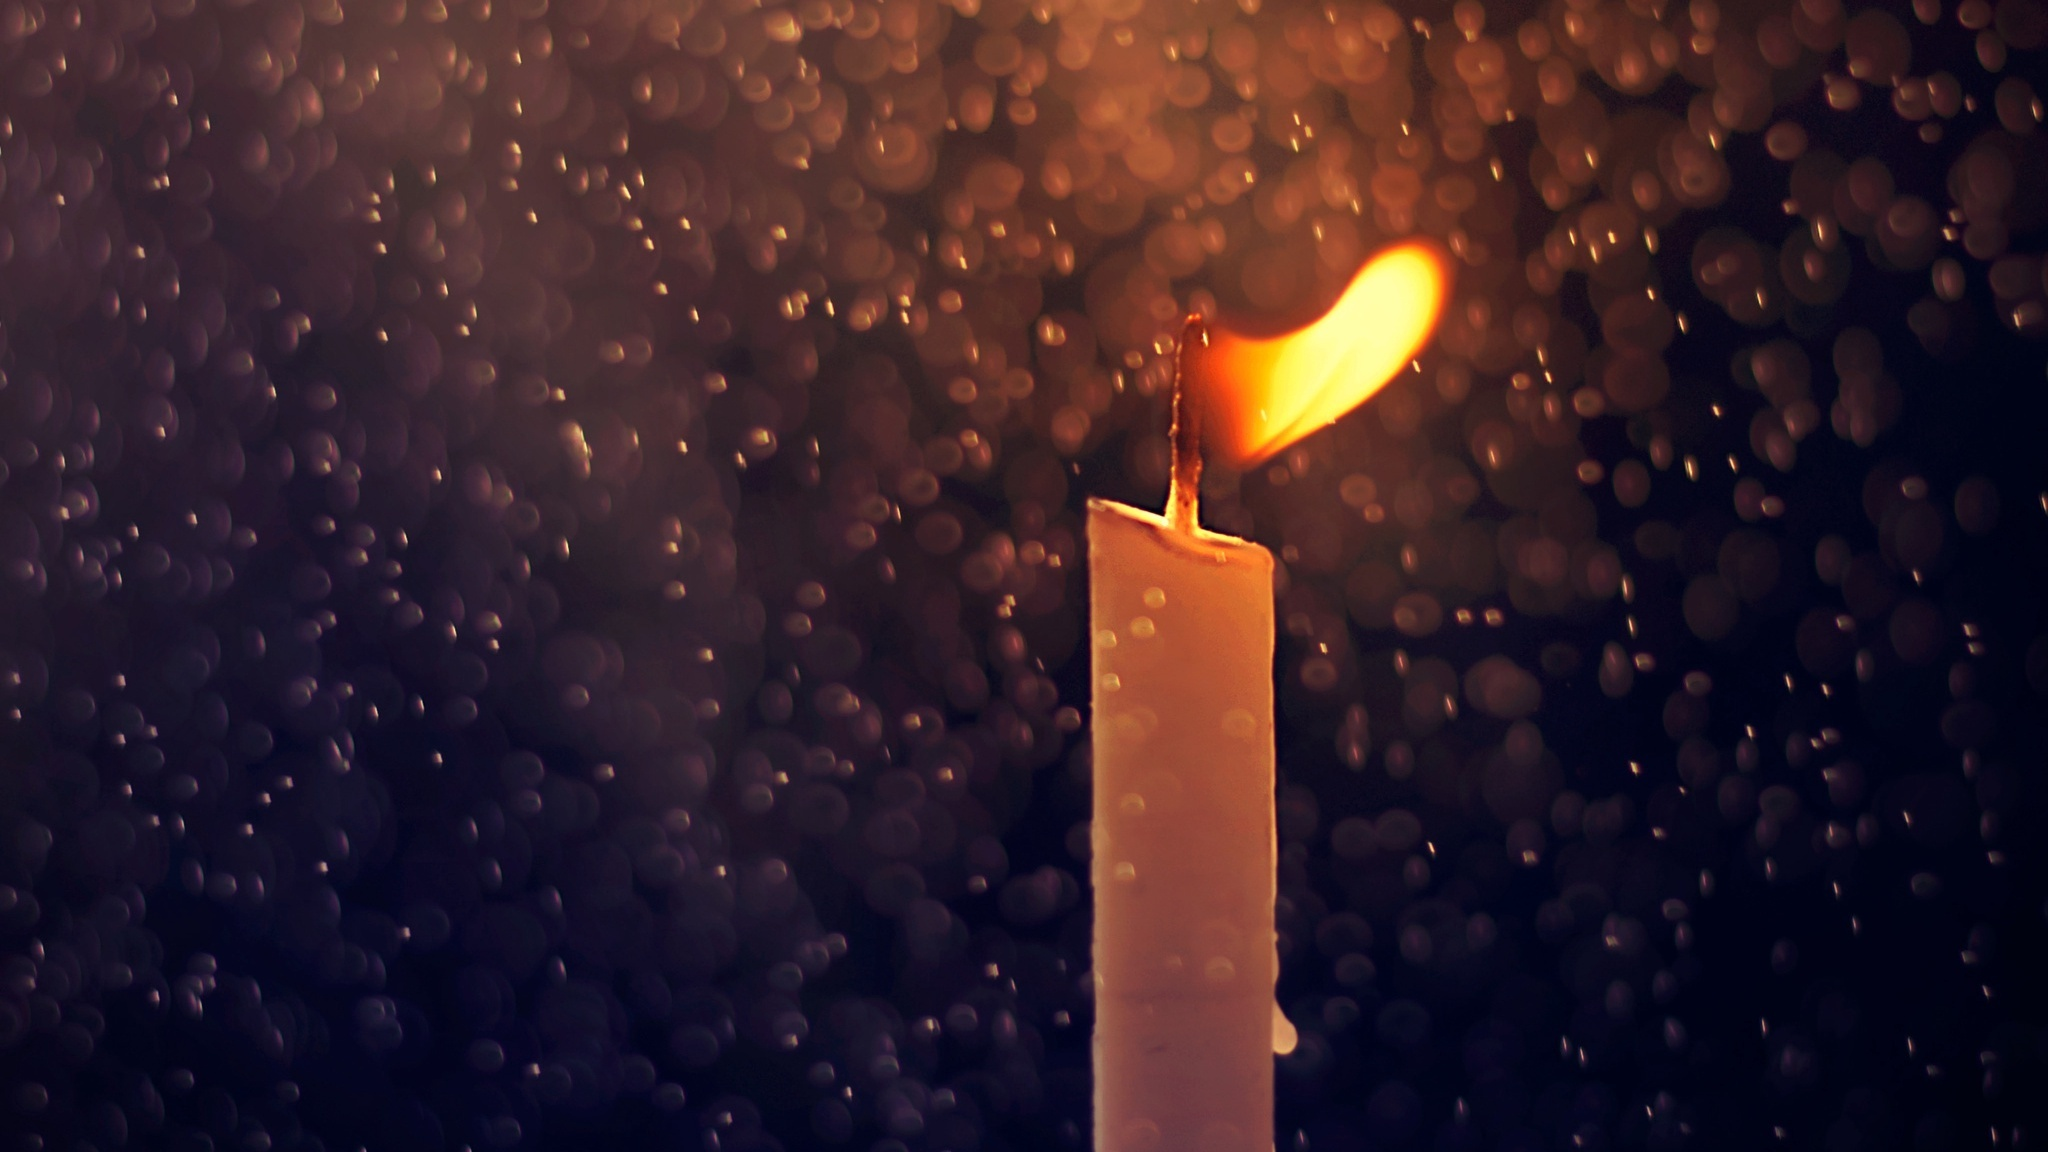 Fire Candle And Rain Drops